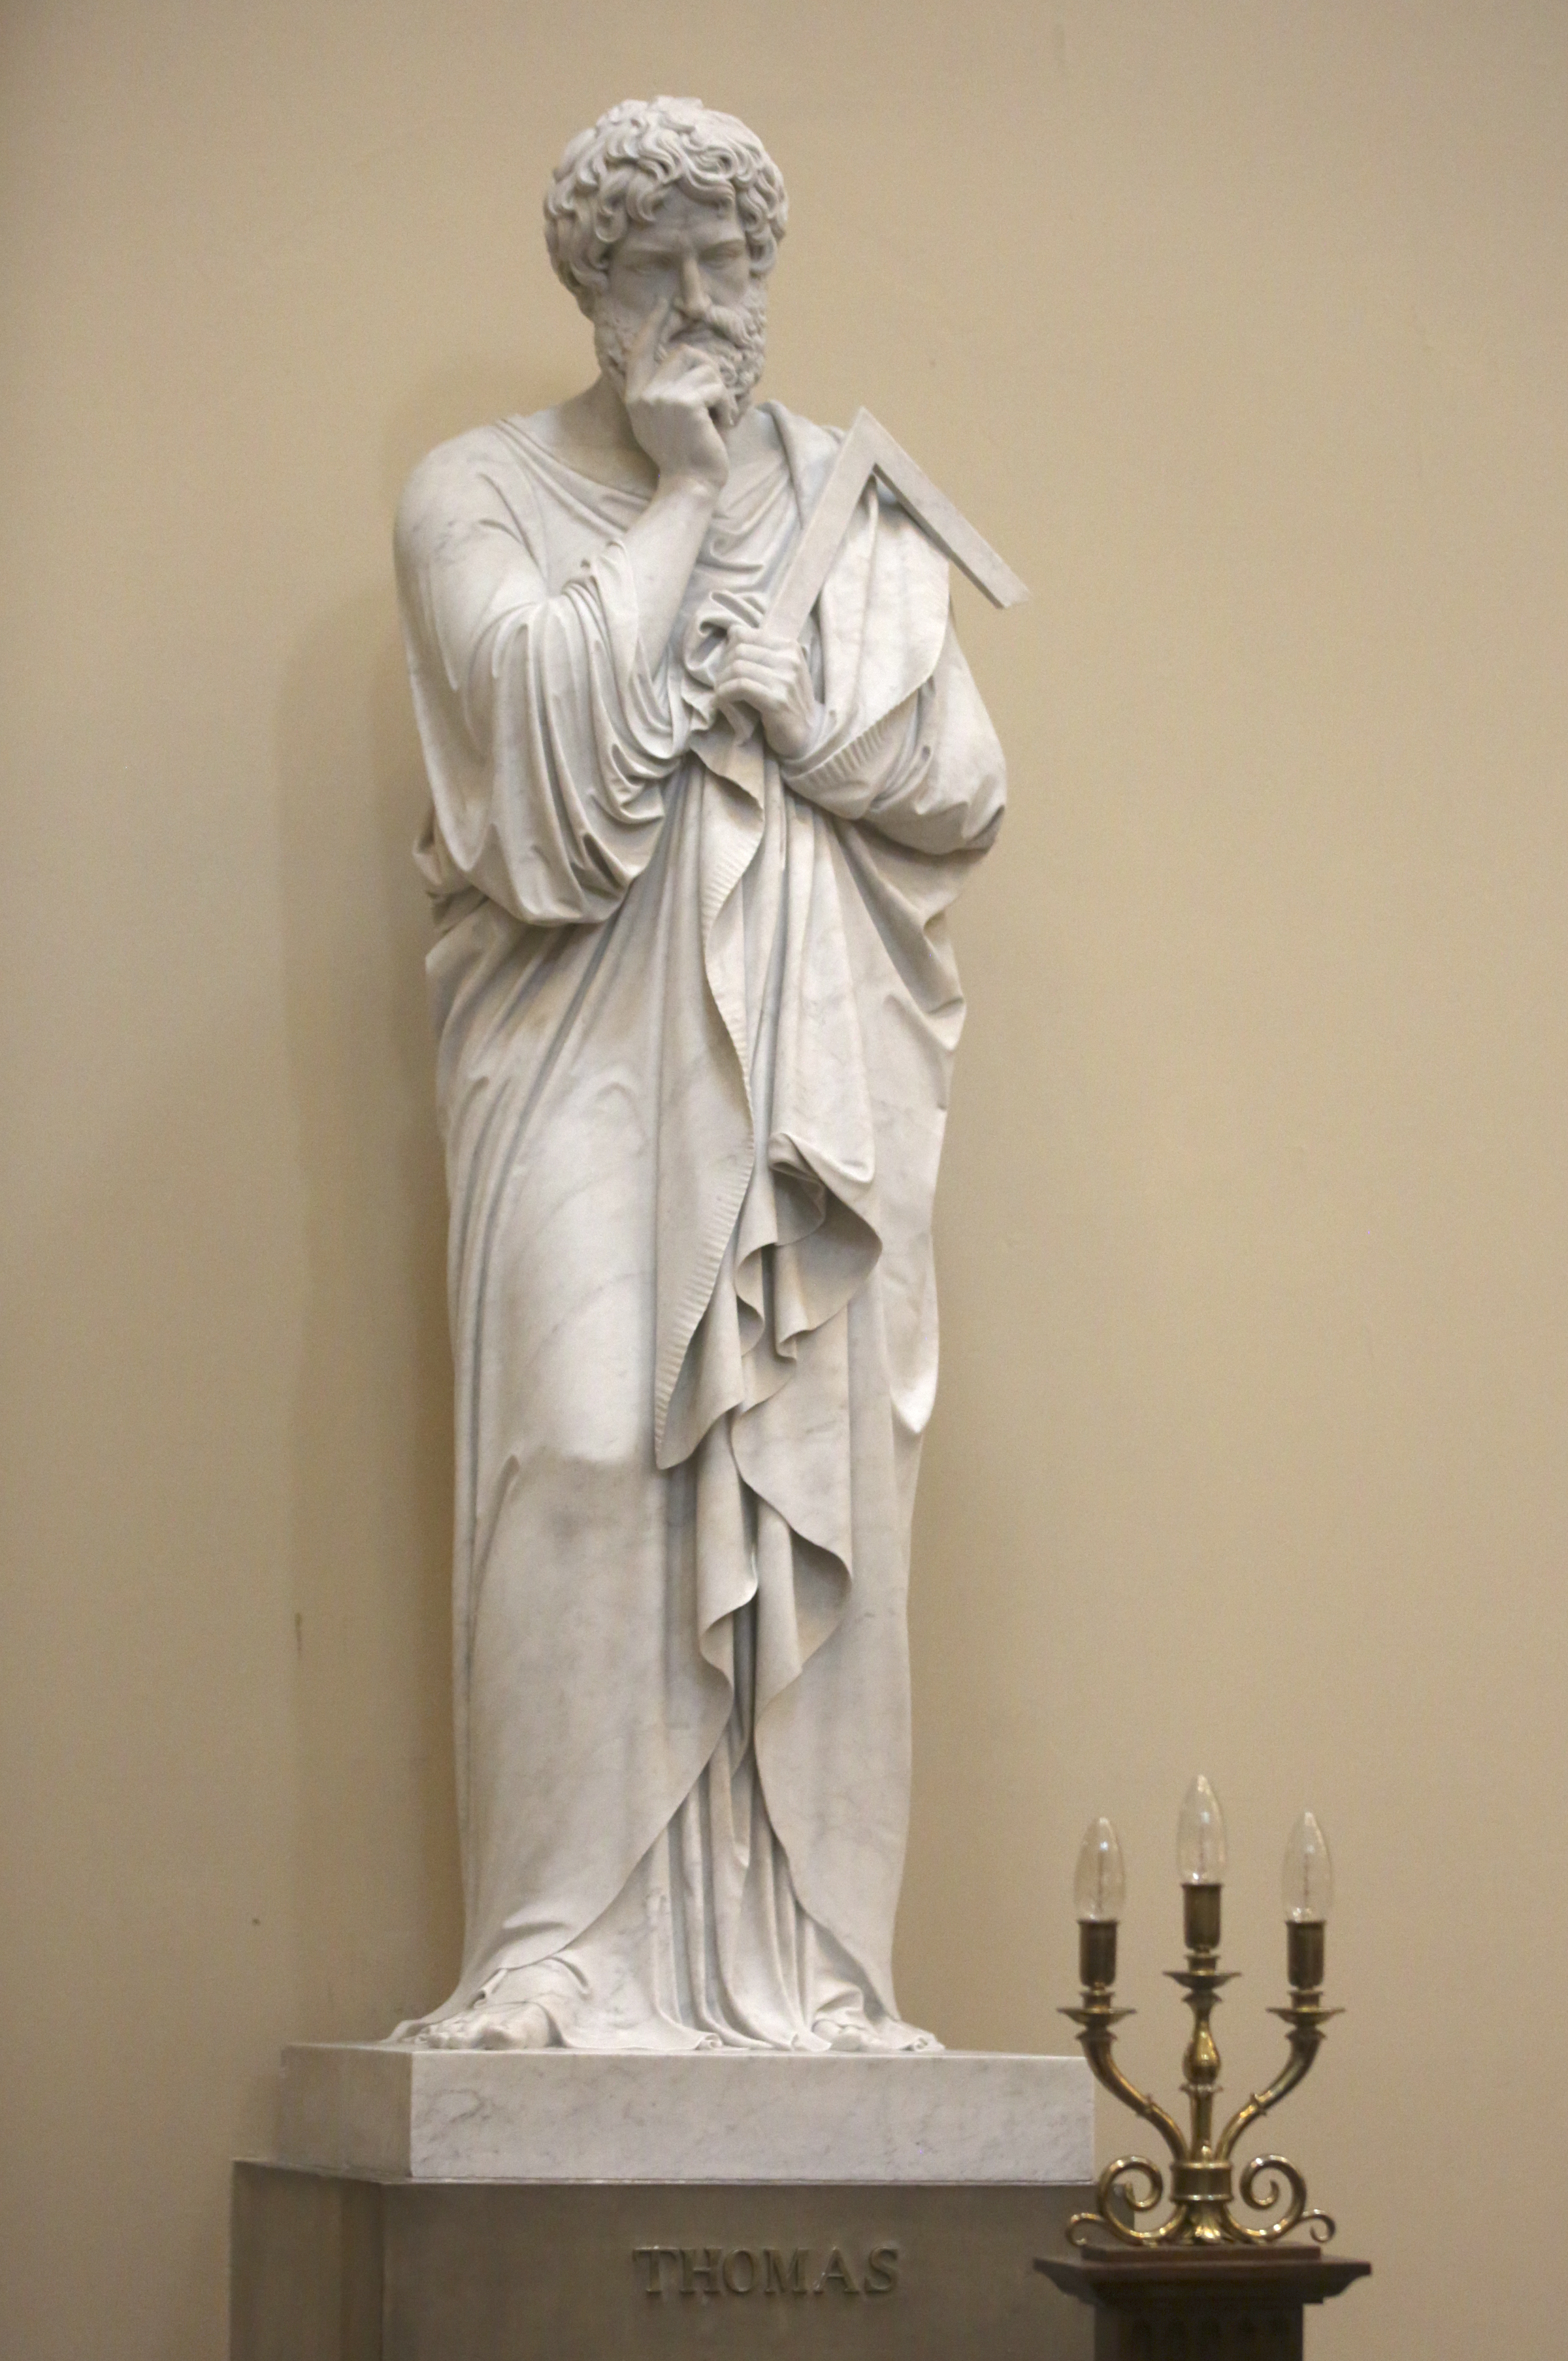 Thomas, one of the 12 apostle statues, by Danish sculptor Bertel Thorvaldsen, at the Church of Our Lady in Copenhagen, Denmark, on Tuesday, Nov. 13, 2018. The statues were carved out of Carrara marble between 1829 and 1848. Replicas of the statues are now on display in the Rome Temple Visitors' Center in Italy.